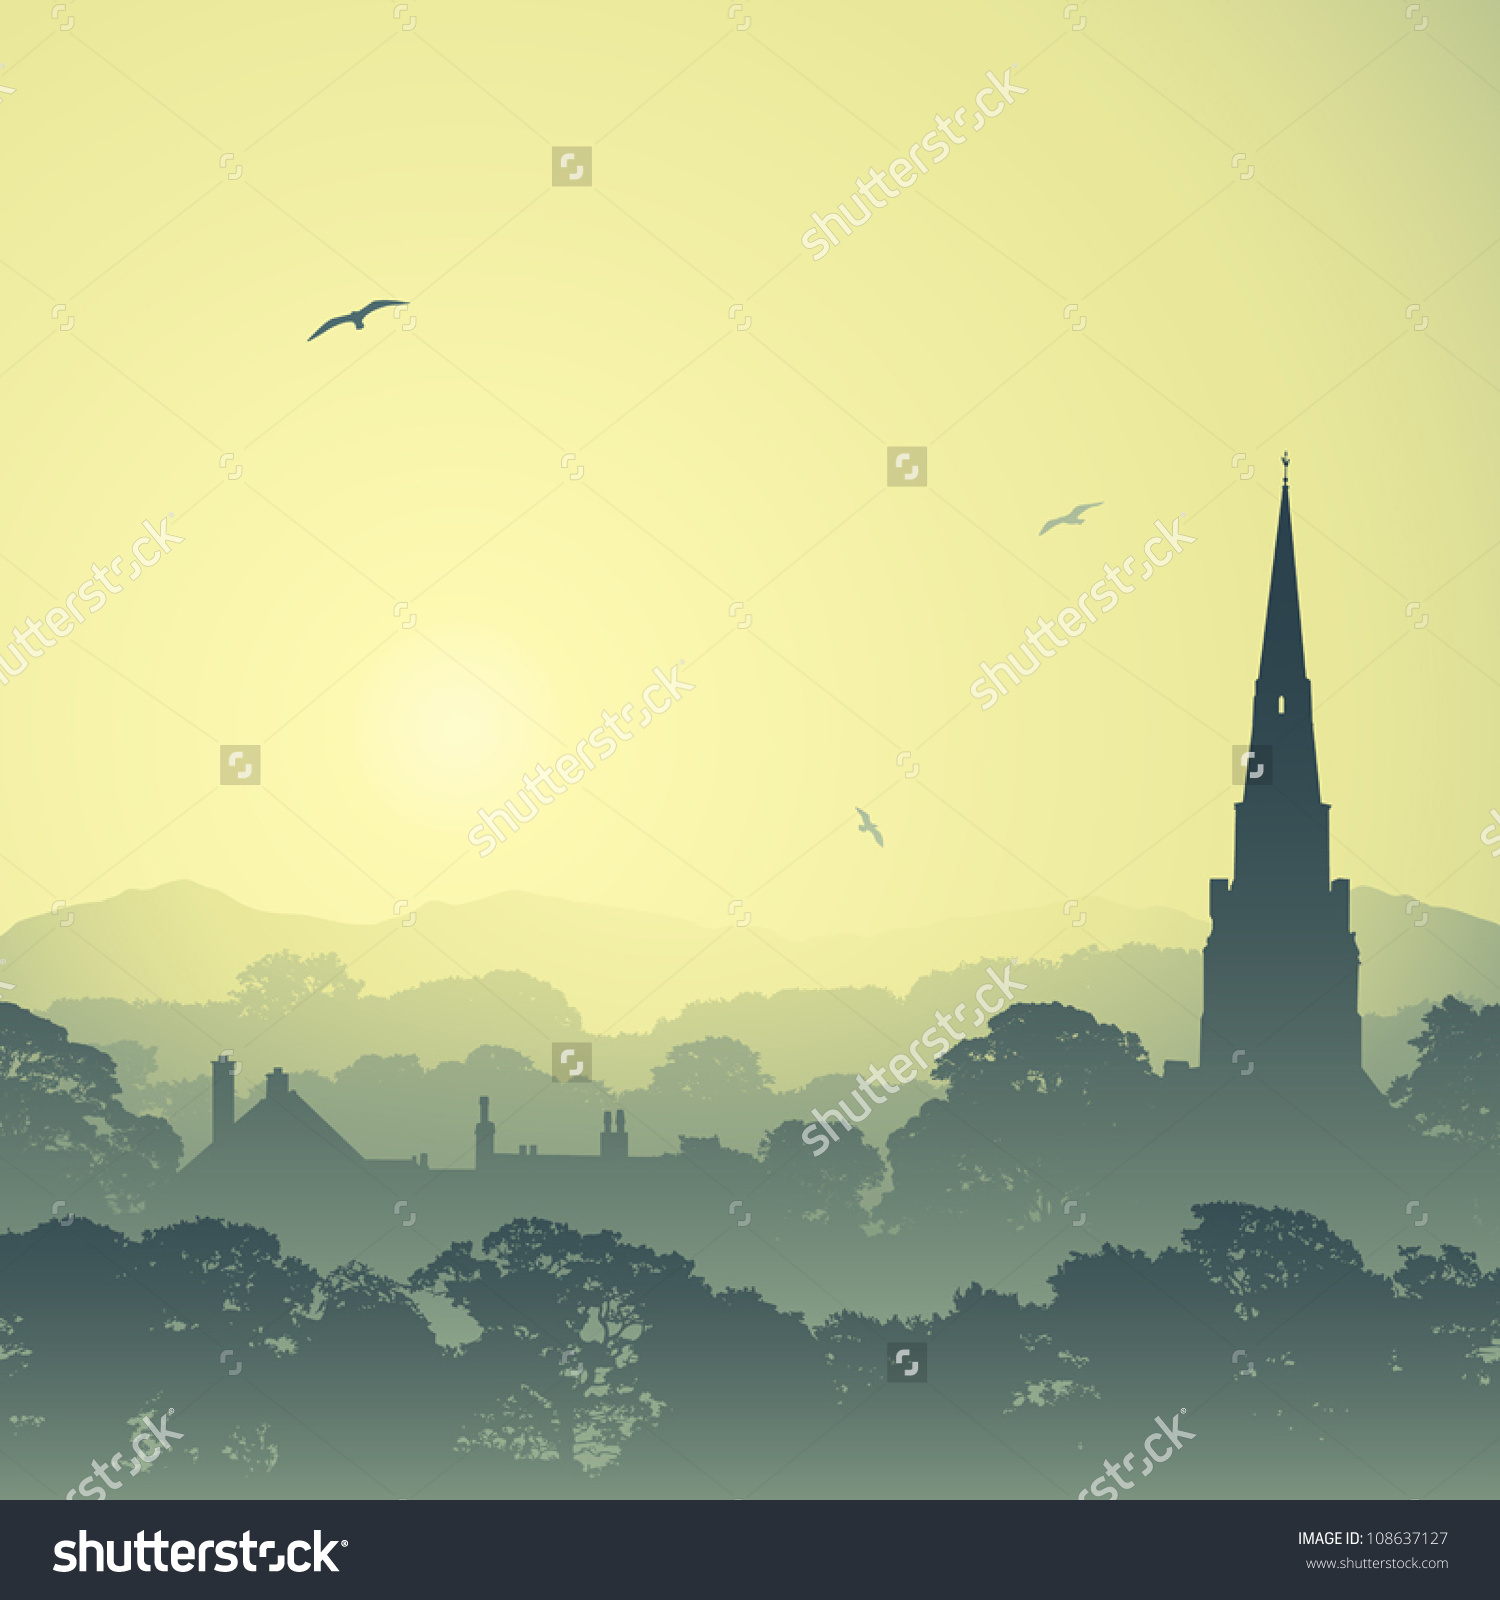 A Country Landscape With Church Spire And Trees Stock Vector.